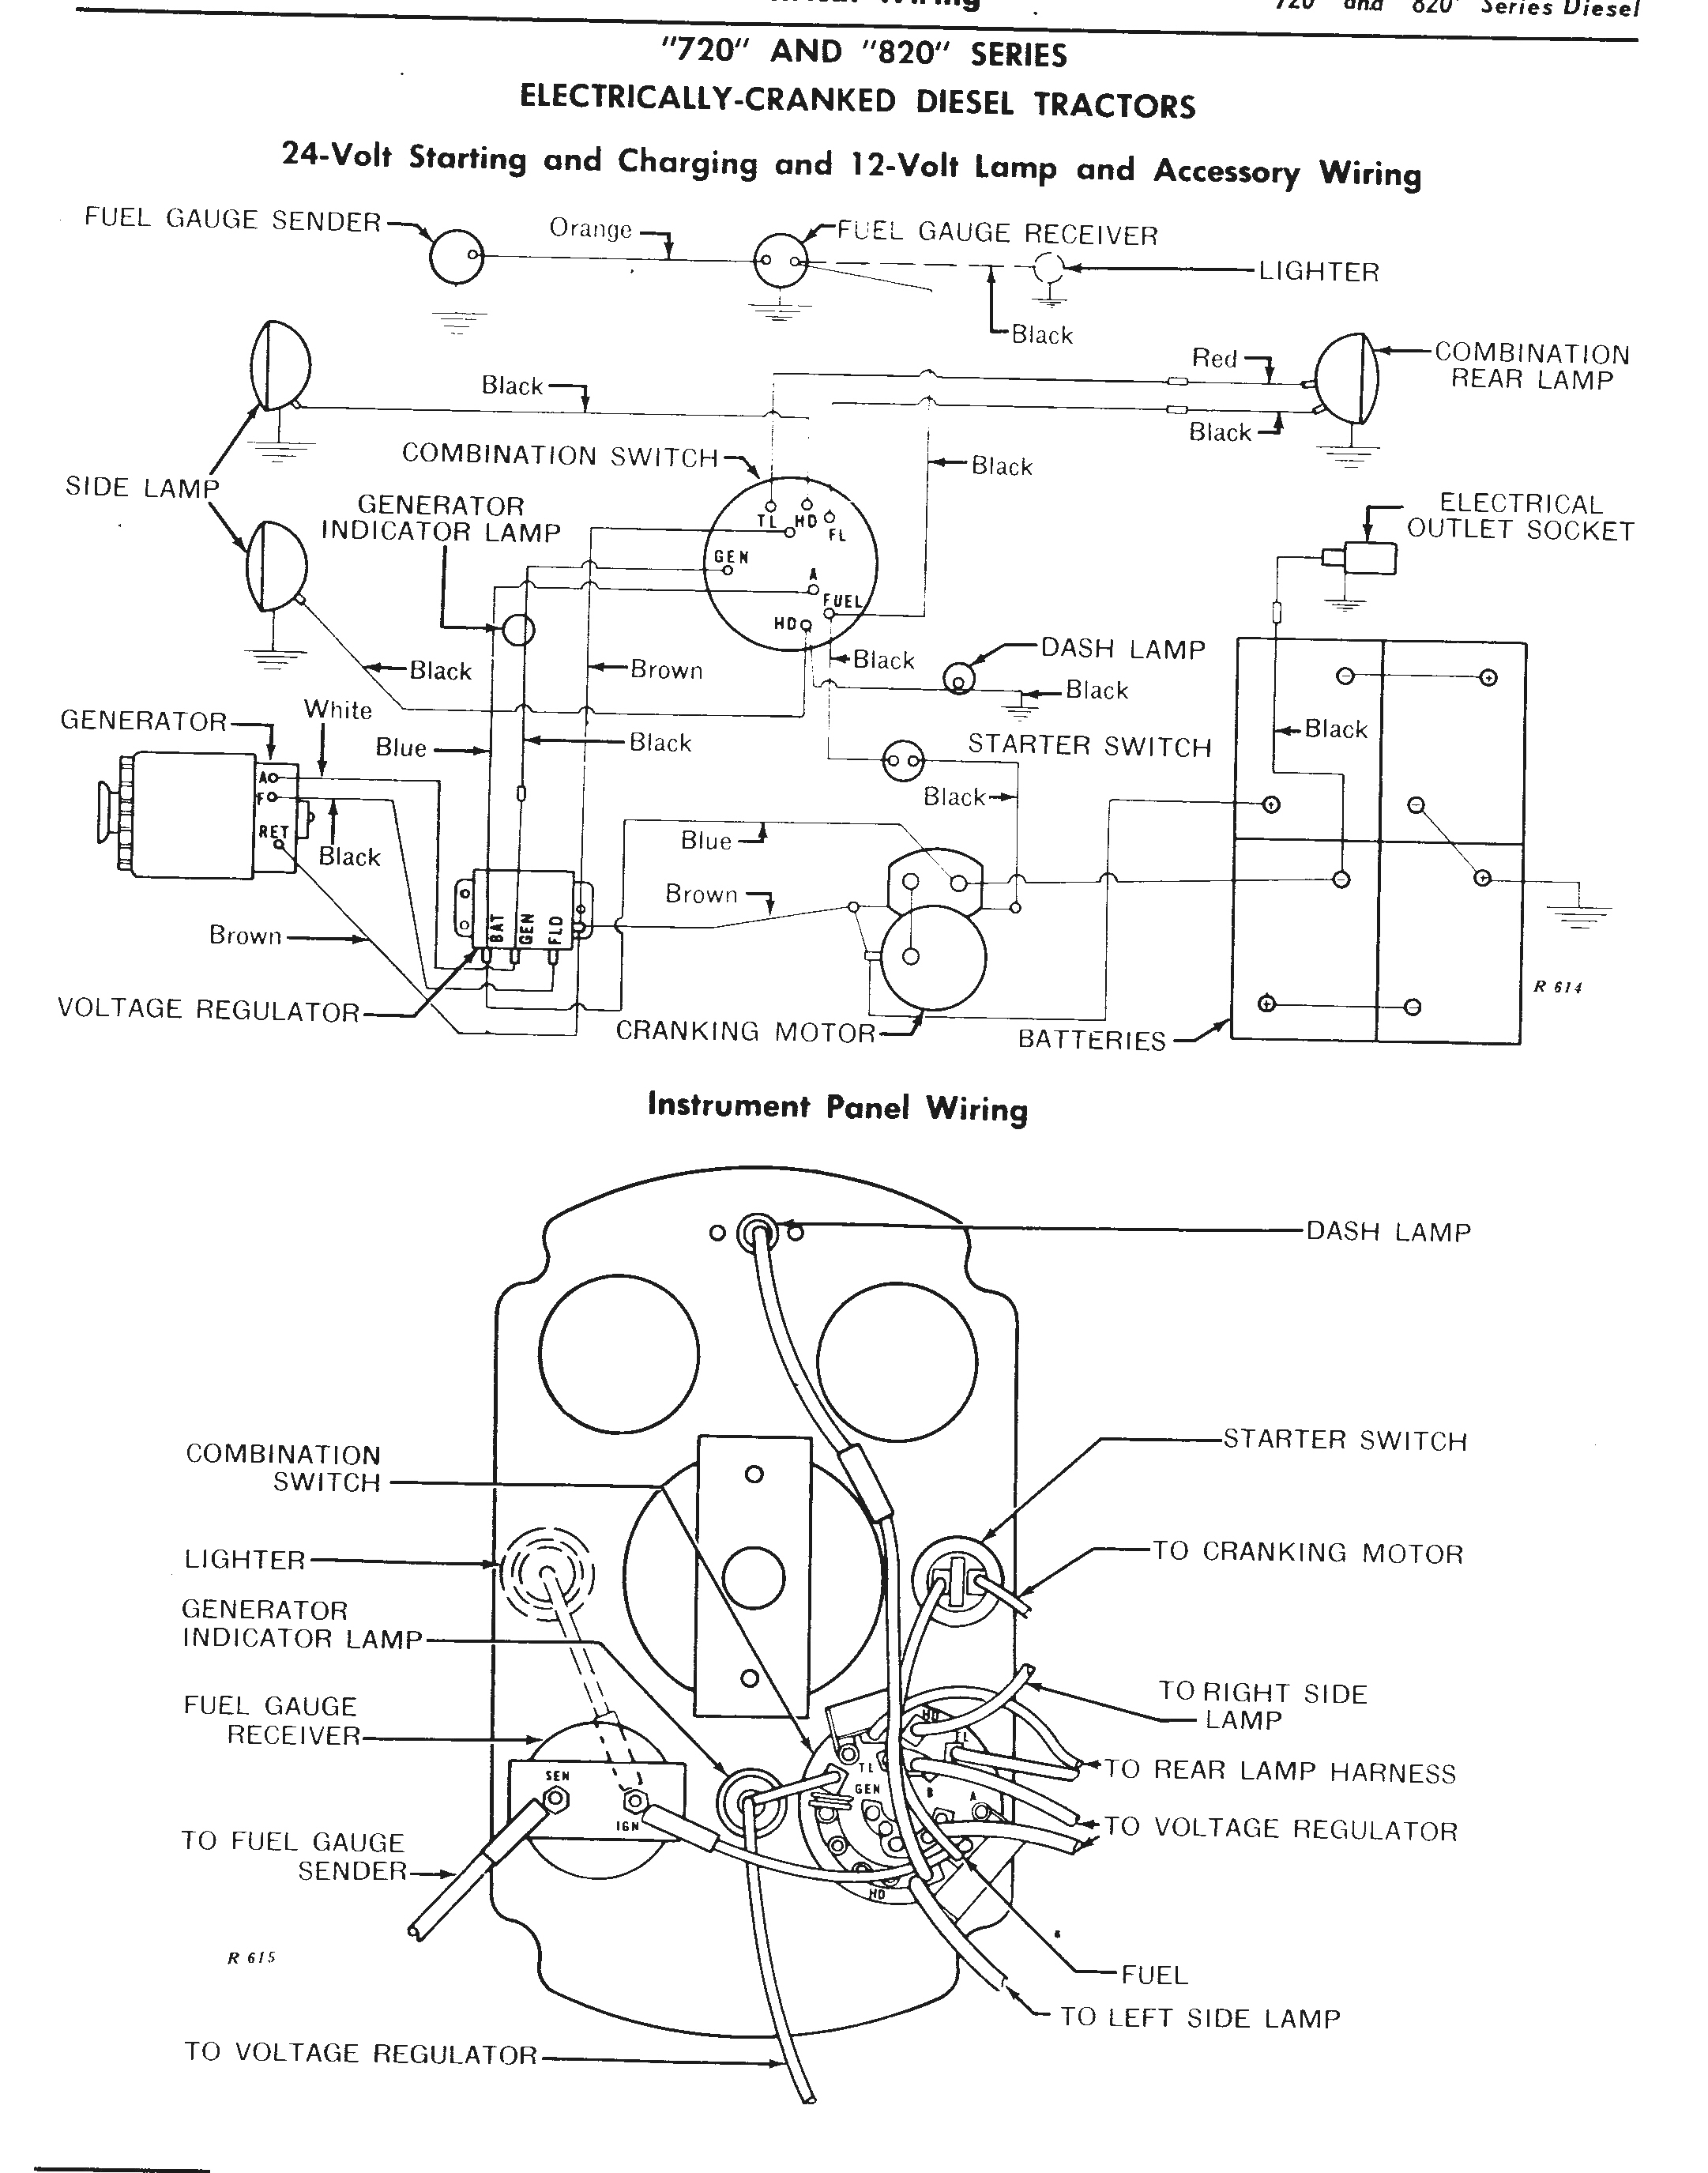 deere_24v_wiring the john deere 24 volt electrical system explained john deere 4020 12 volt wiring diagram at reclaimingppi.co